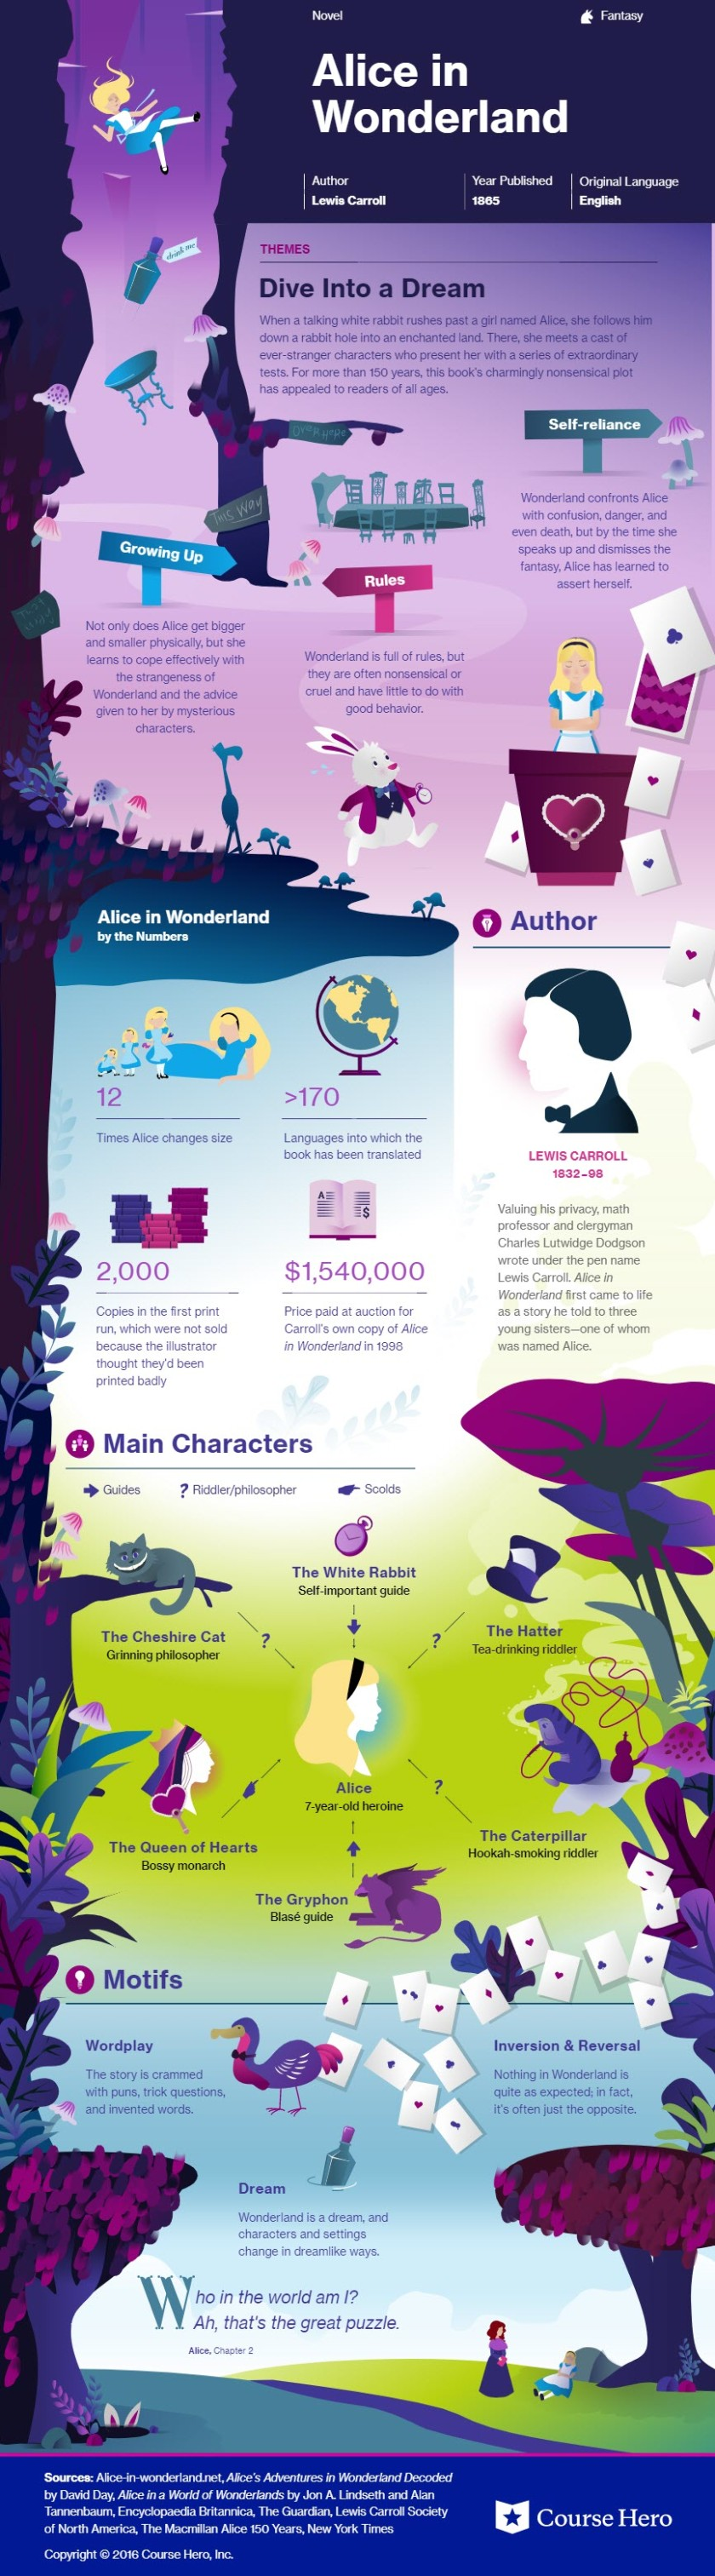 Alice in Wonderland Infographic - Course Hero